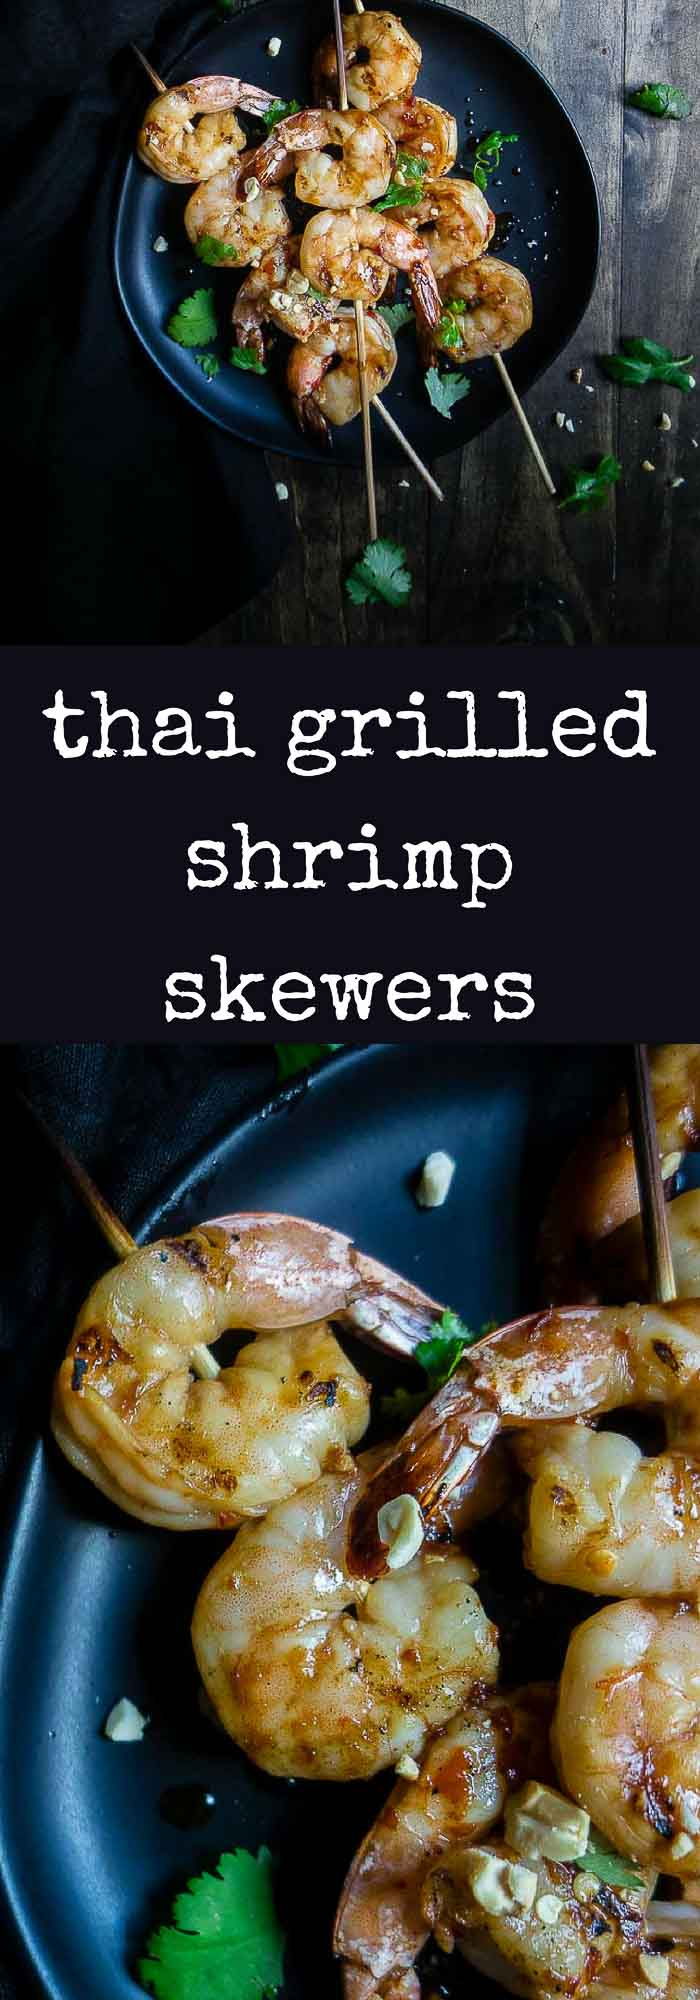 These Thai Grilled Shrimp Skewers are the most amazingly flavorful juicy, succulent shrimp you\'ll ever make, served with Thai coconut sticky rice! BEST SHRIMP EVER! I love these things. nam prik shrimp | grilled shrimp | thai marinated shrimp | grilled shrimp | chili lime shrimp | grilled thai shrimp skewers | healthy grilled shrimp | healthy shrimp recipes | thai coconut sticky rice | coconut rice | how to make sticky rice | Thai takeout recipes | thai fusion